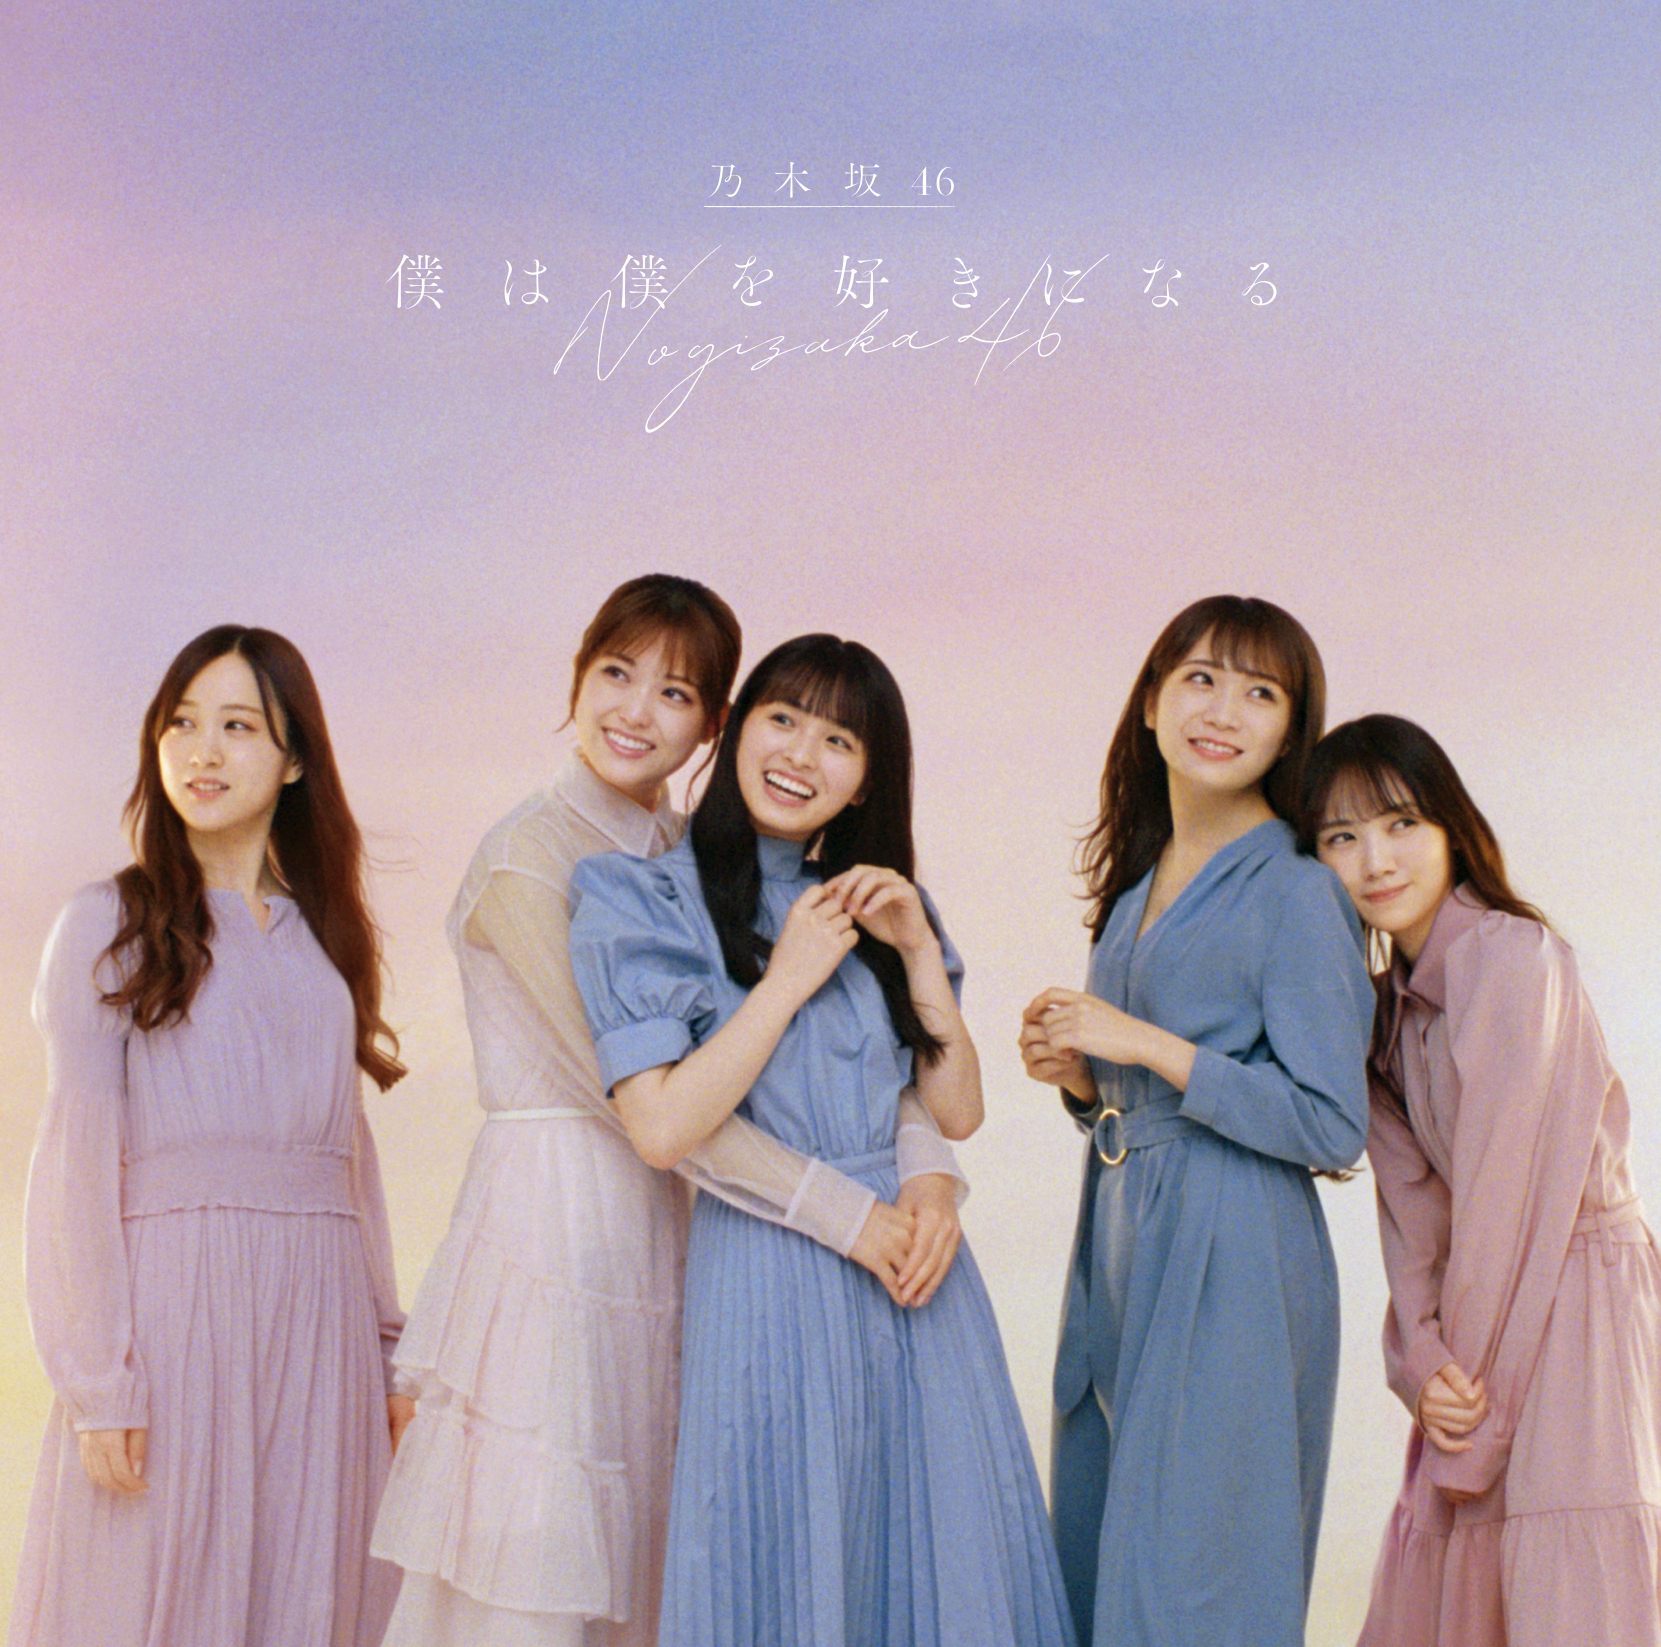 Nogizaka46 – Out of the blue